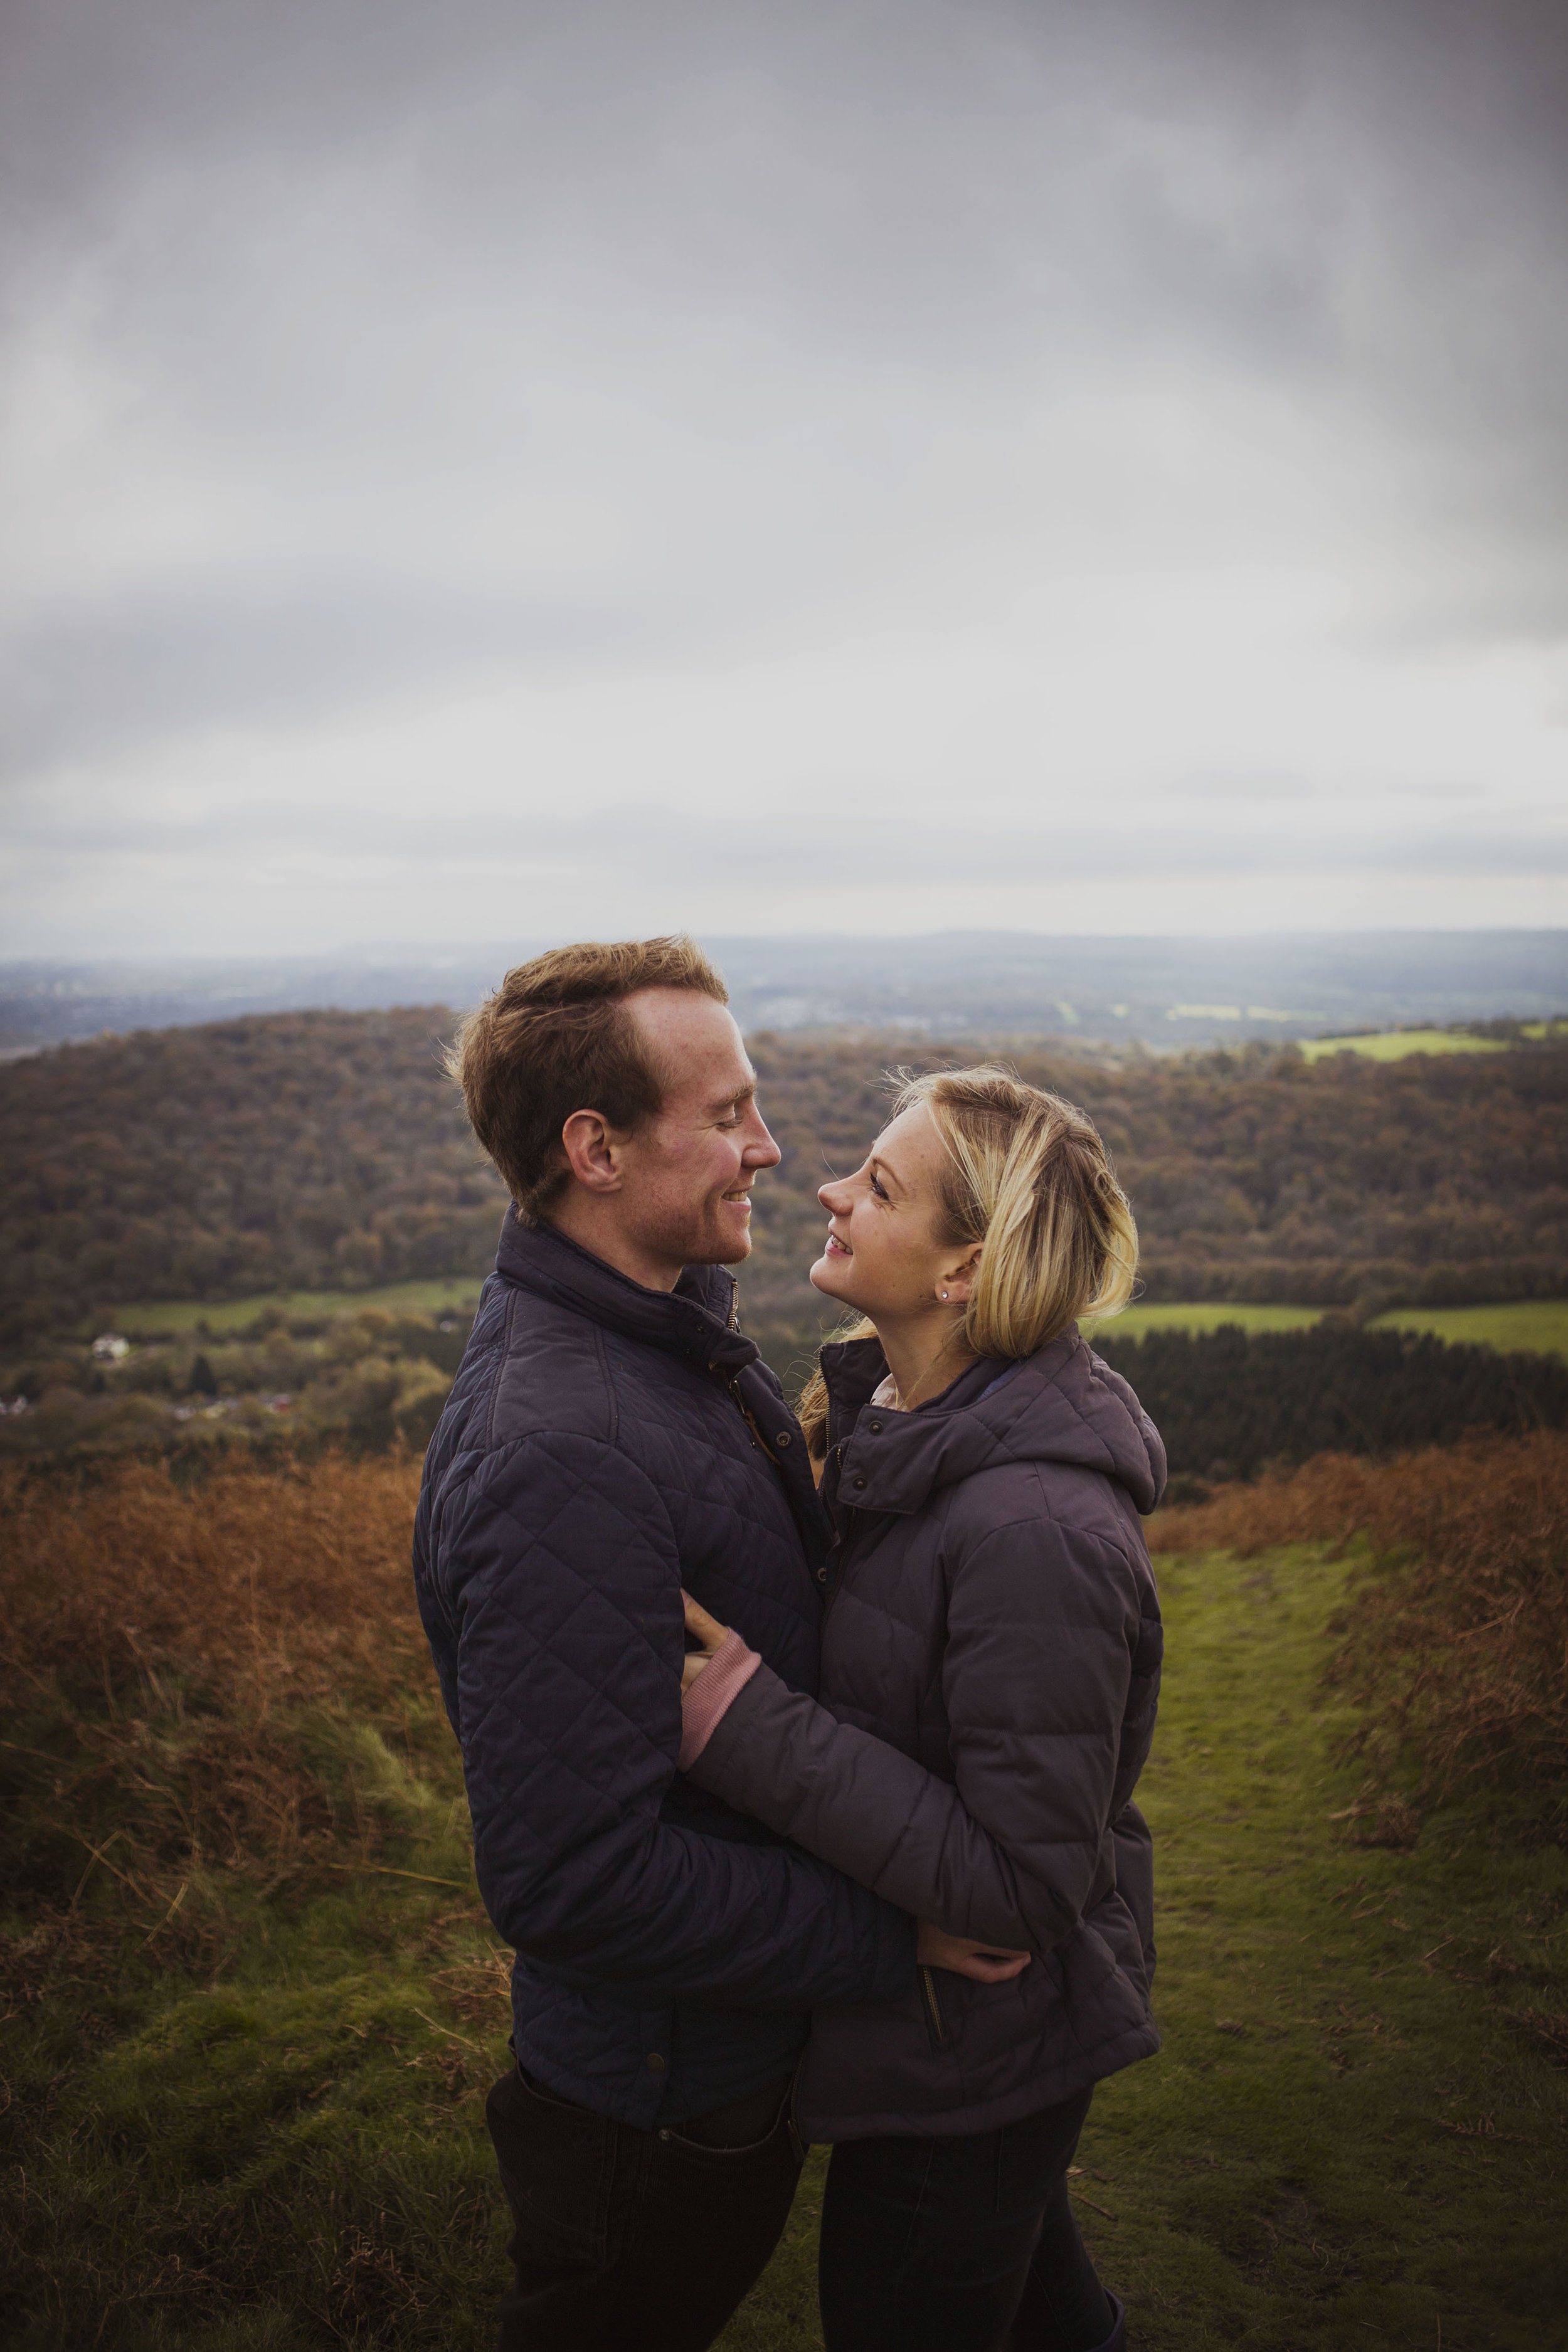 Chris_and_Lucy_Prewed_35.jpg